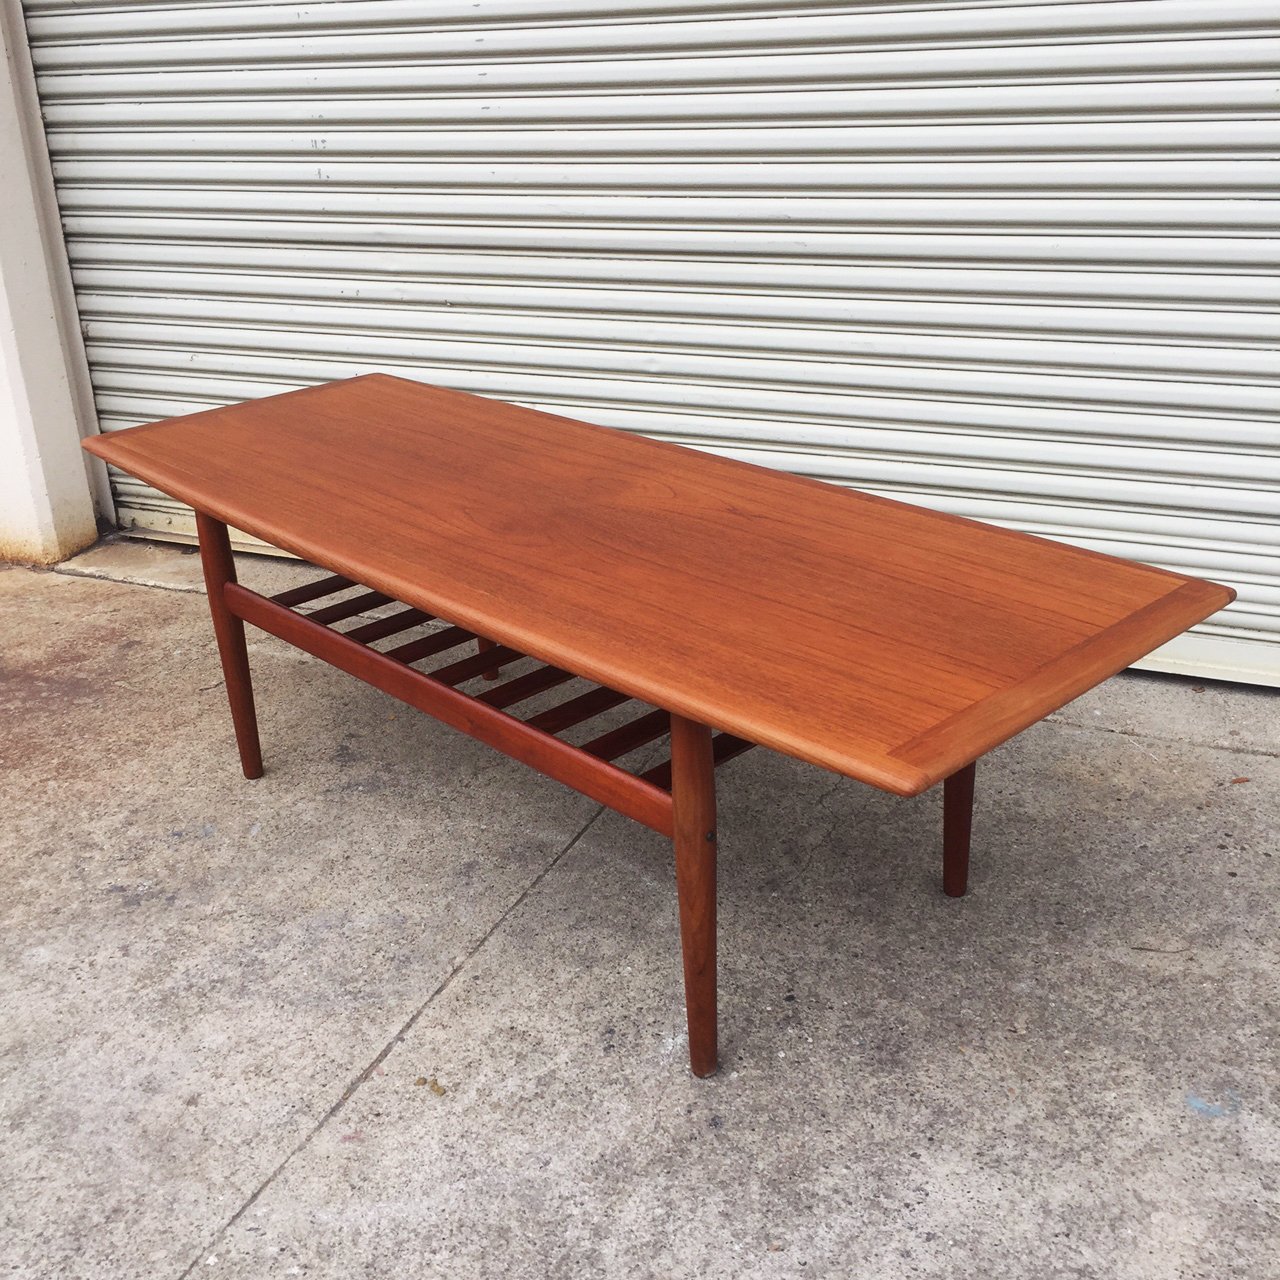 Scandinavian Teak Coffee Table: Grete Jalk Teak Coffee Table